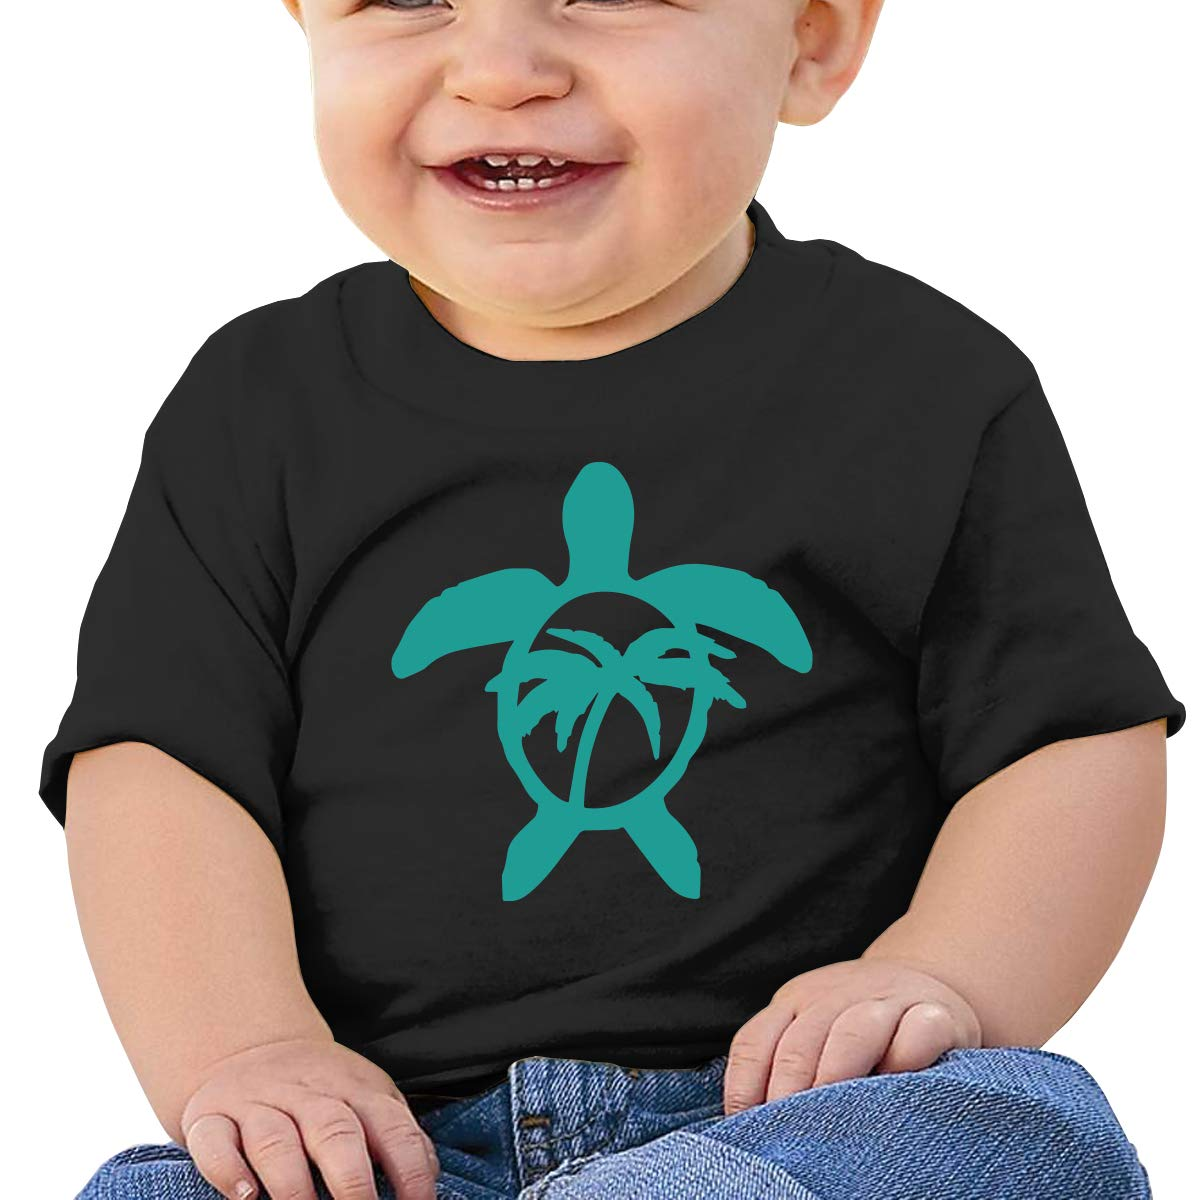 Hawaiian Palm Tree and Sea Turtle Toddler Baby Newborn Short Sleeve T-Shirt 6-24 Month Cotton Tops